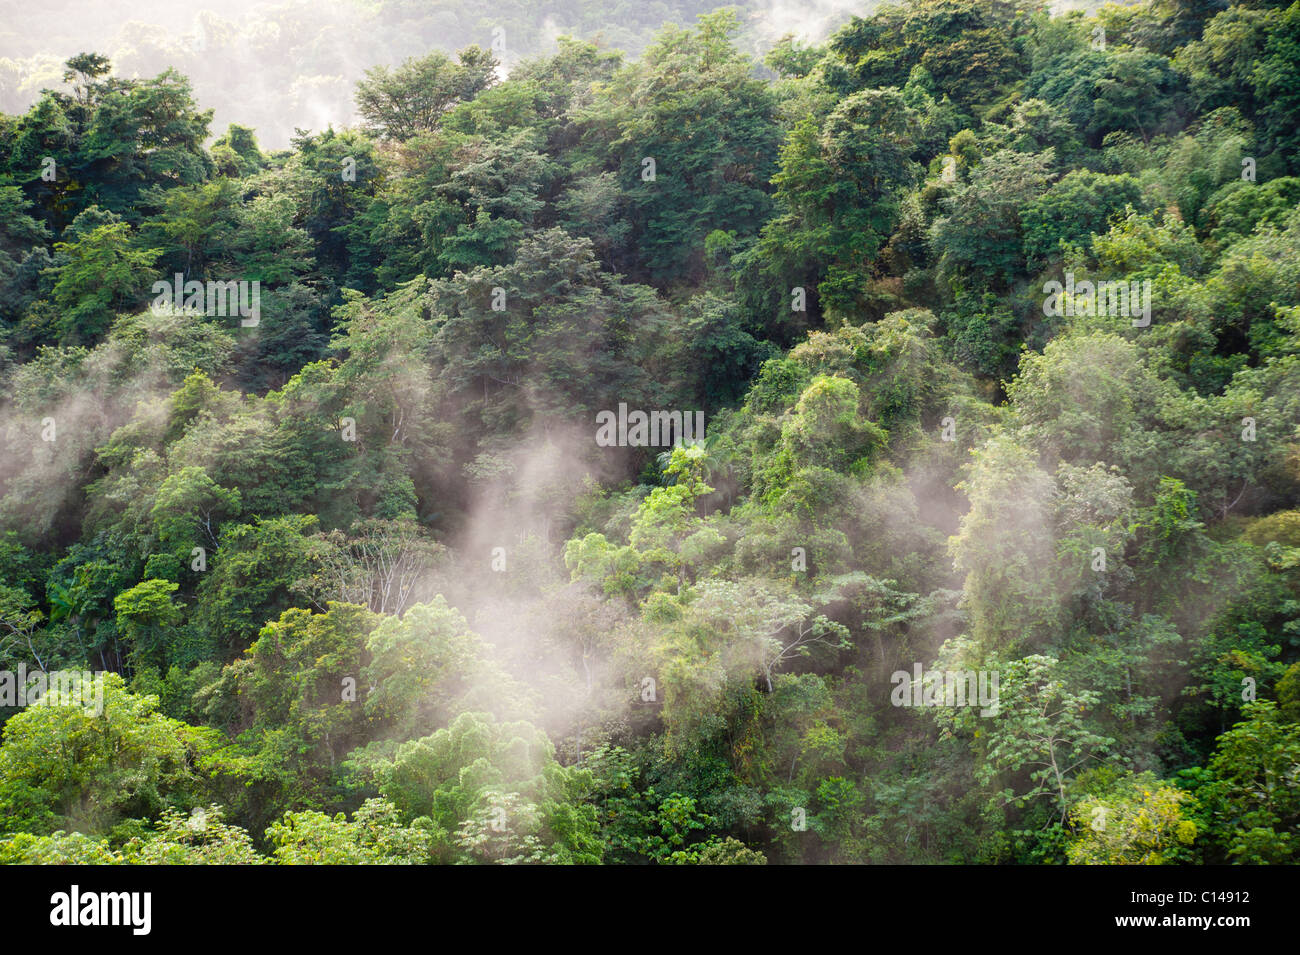 Forêt amazonienne, jungle, brume, tree tops, Photo Stock